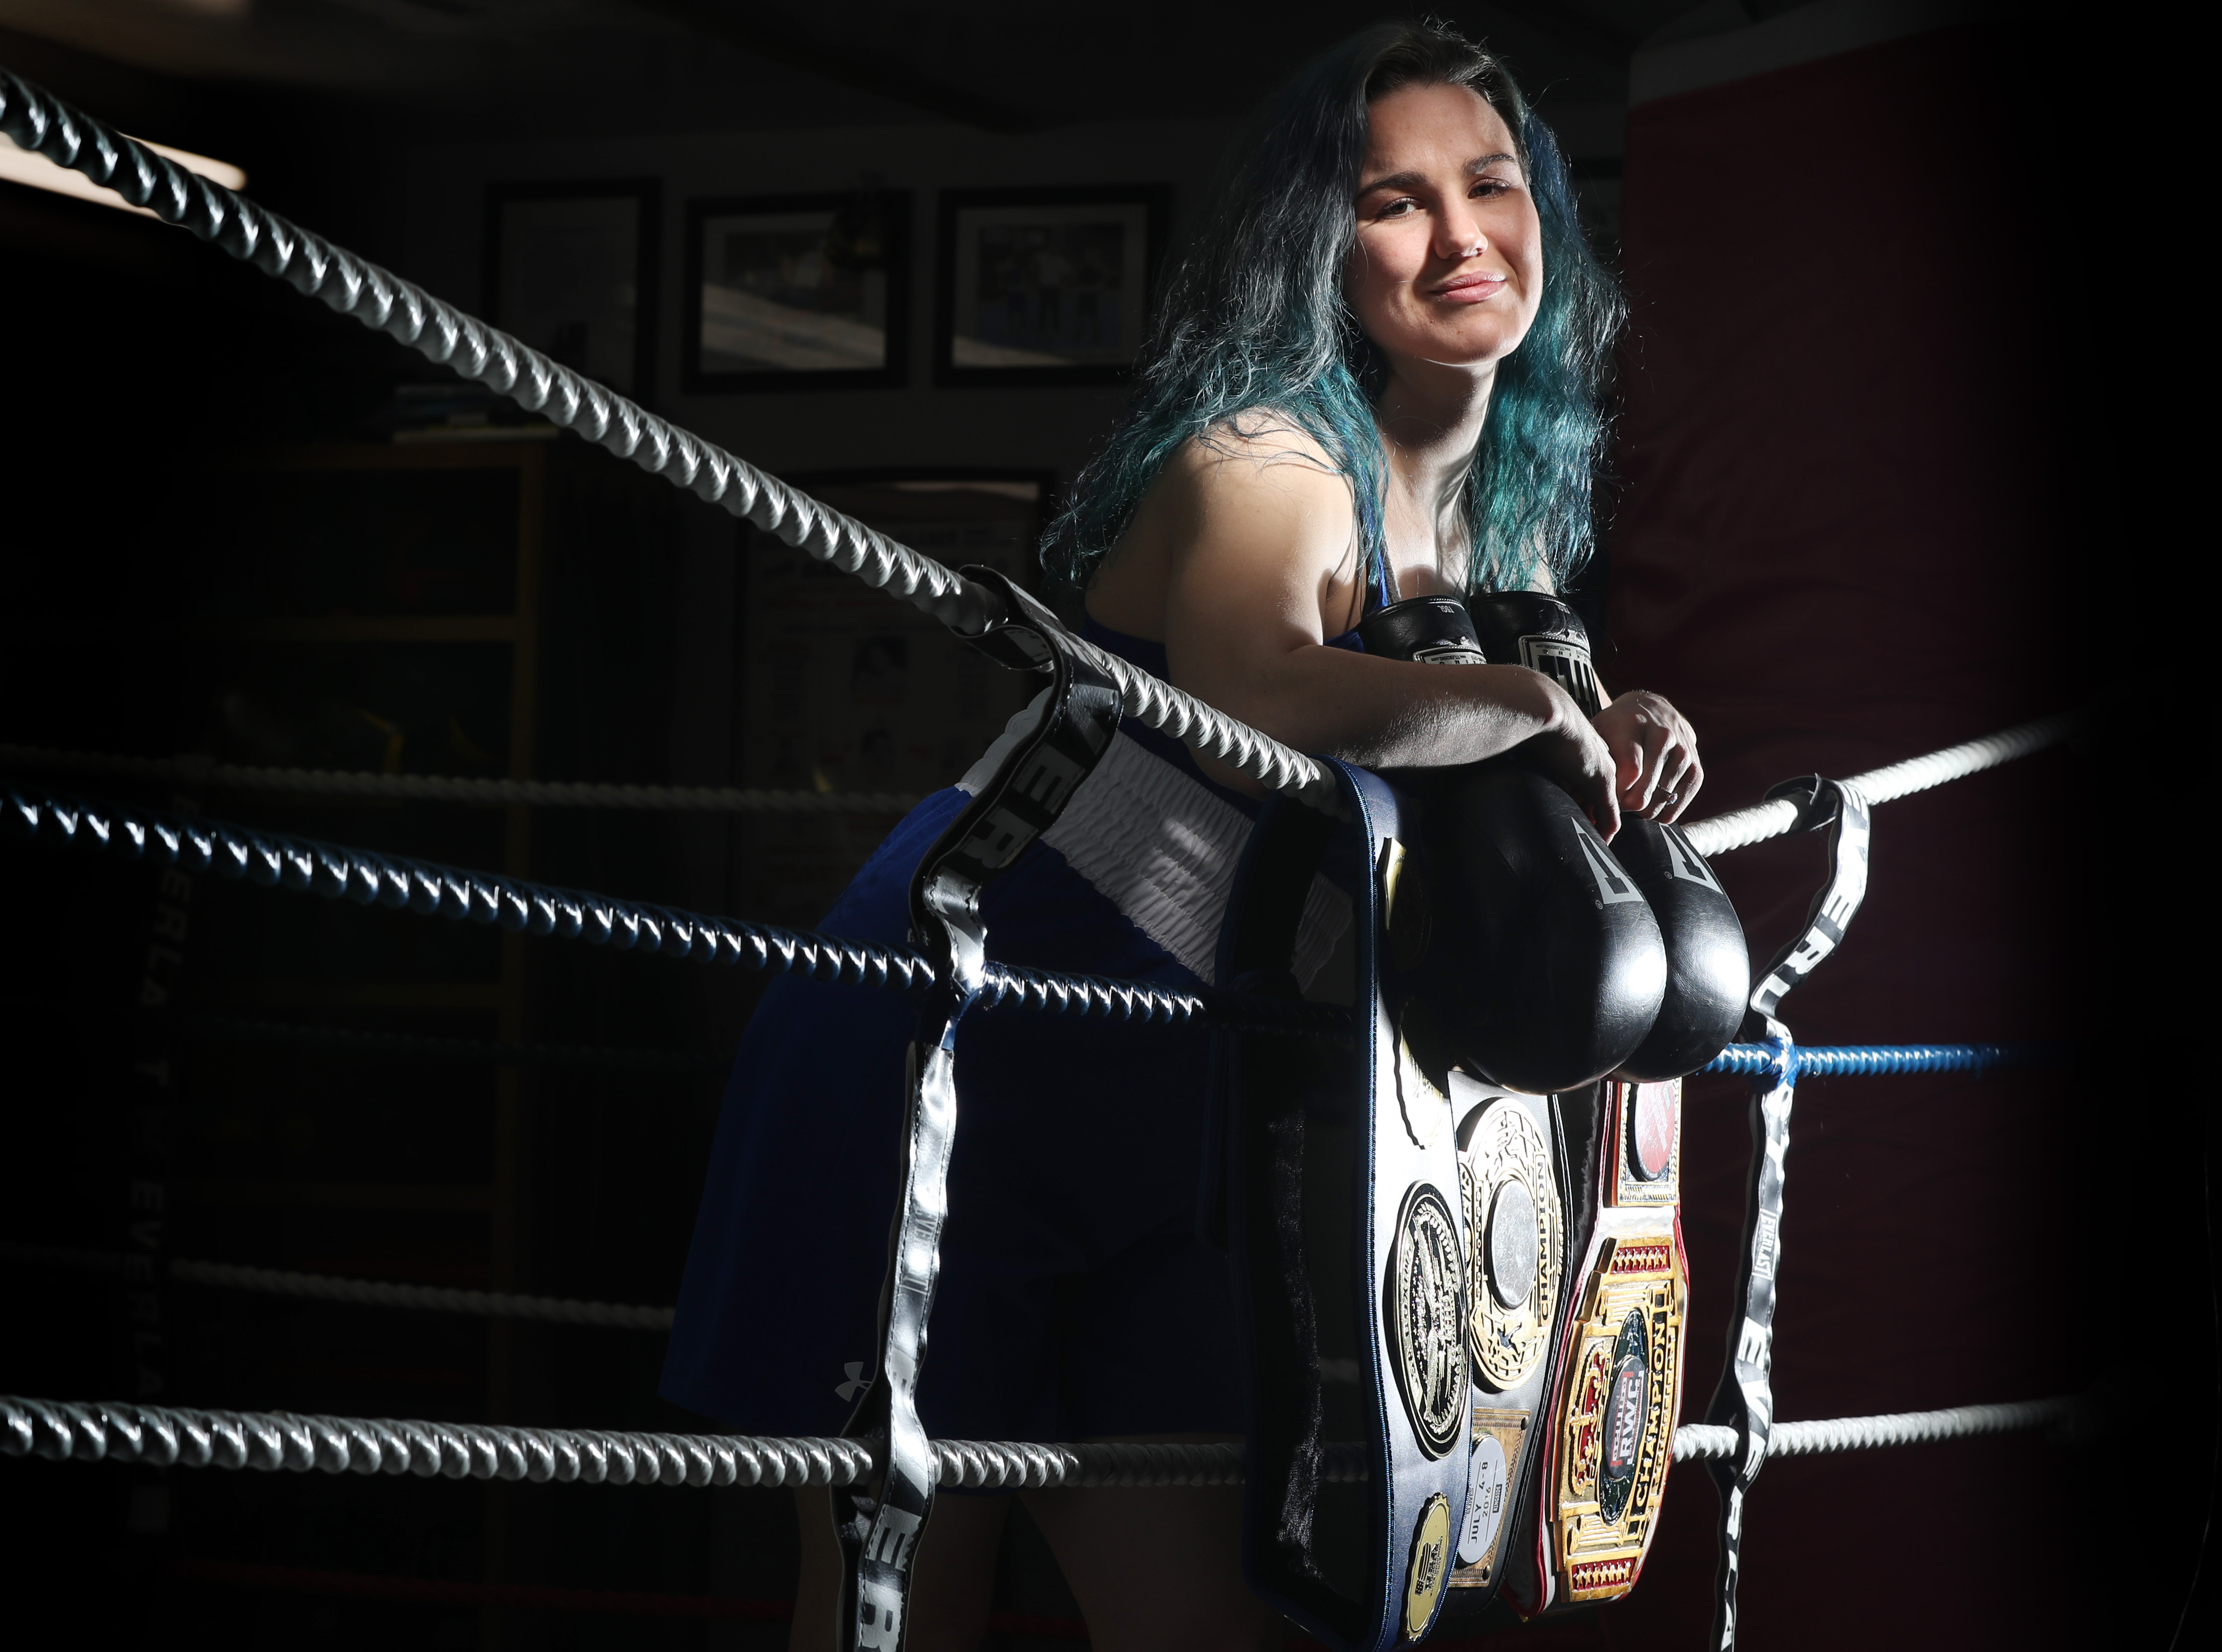 Wendy Casey not only teaches seventh grade math at Westminster Community Charter School in Buffalo, she is a national championship boxer. Her next goal is the 2020 Olympics in Tokyo. (James P. McCoy/Buffalo News)